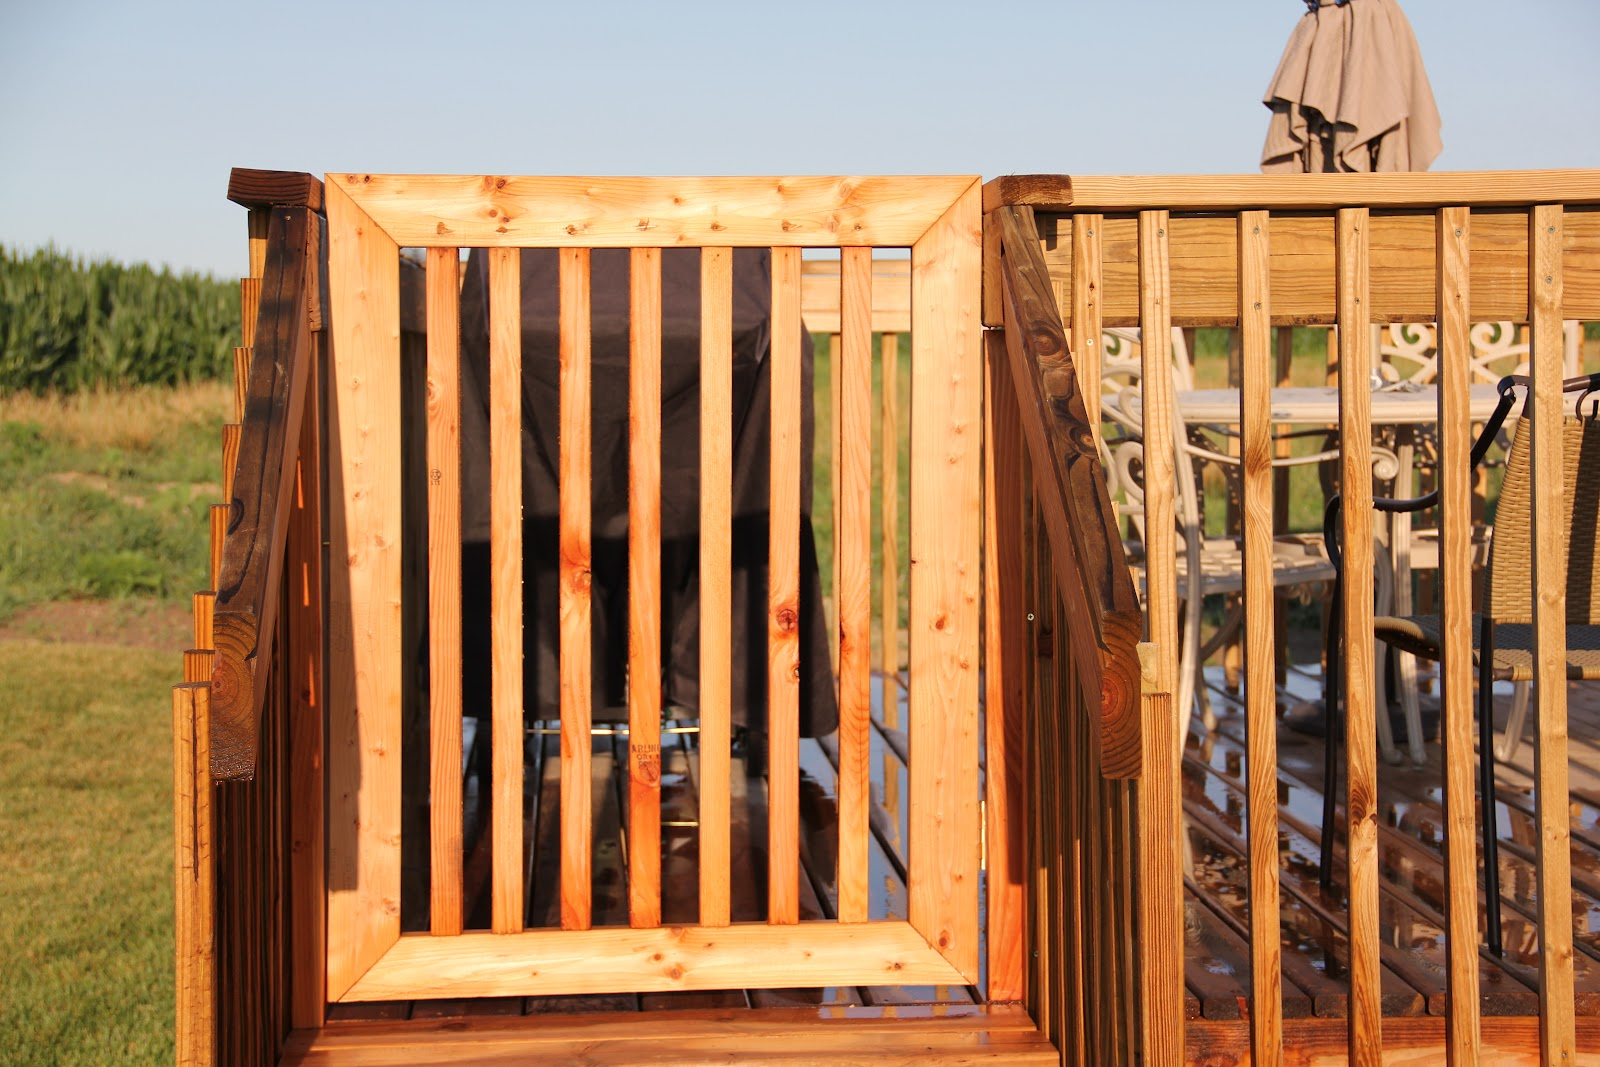 Why buy it when you can build it deck gate Building a deck